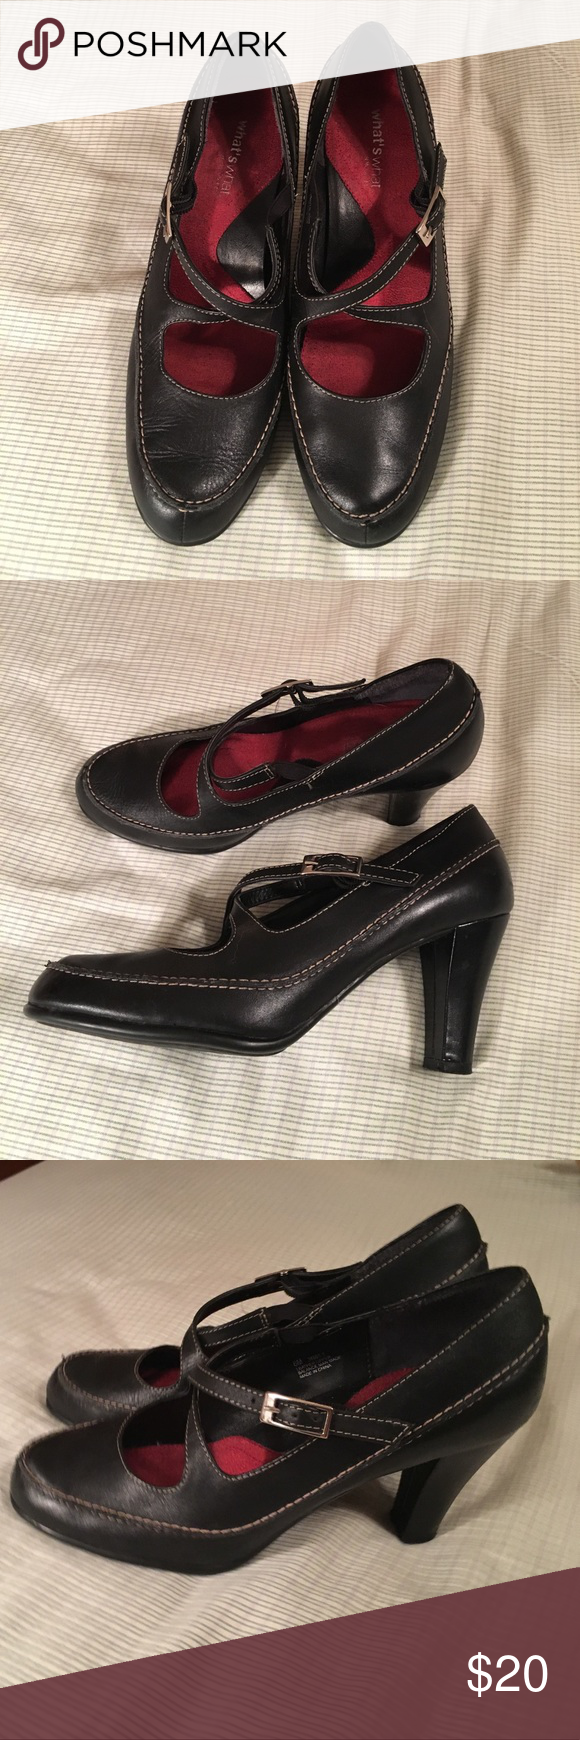 "👠 What's What by Aerosoles Black Mary Jane Heels Super cute Mary Jane style pumps by Aerosoles. So comfortable and hardly worn. Black faux leather with tan stitching, size 6, heel around 3"". Offers welcome! AEROSOLES Shoes Heels"